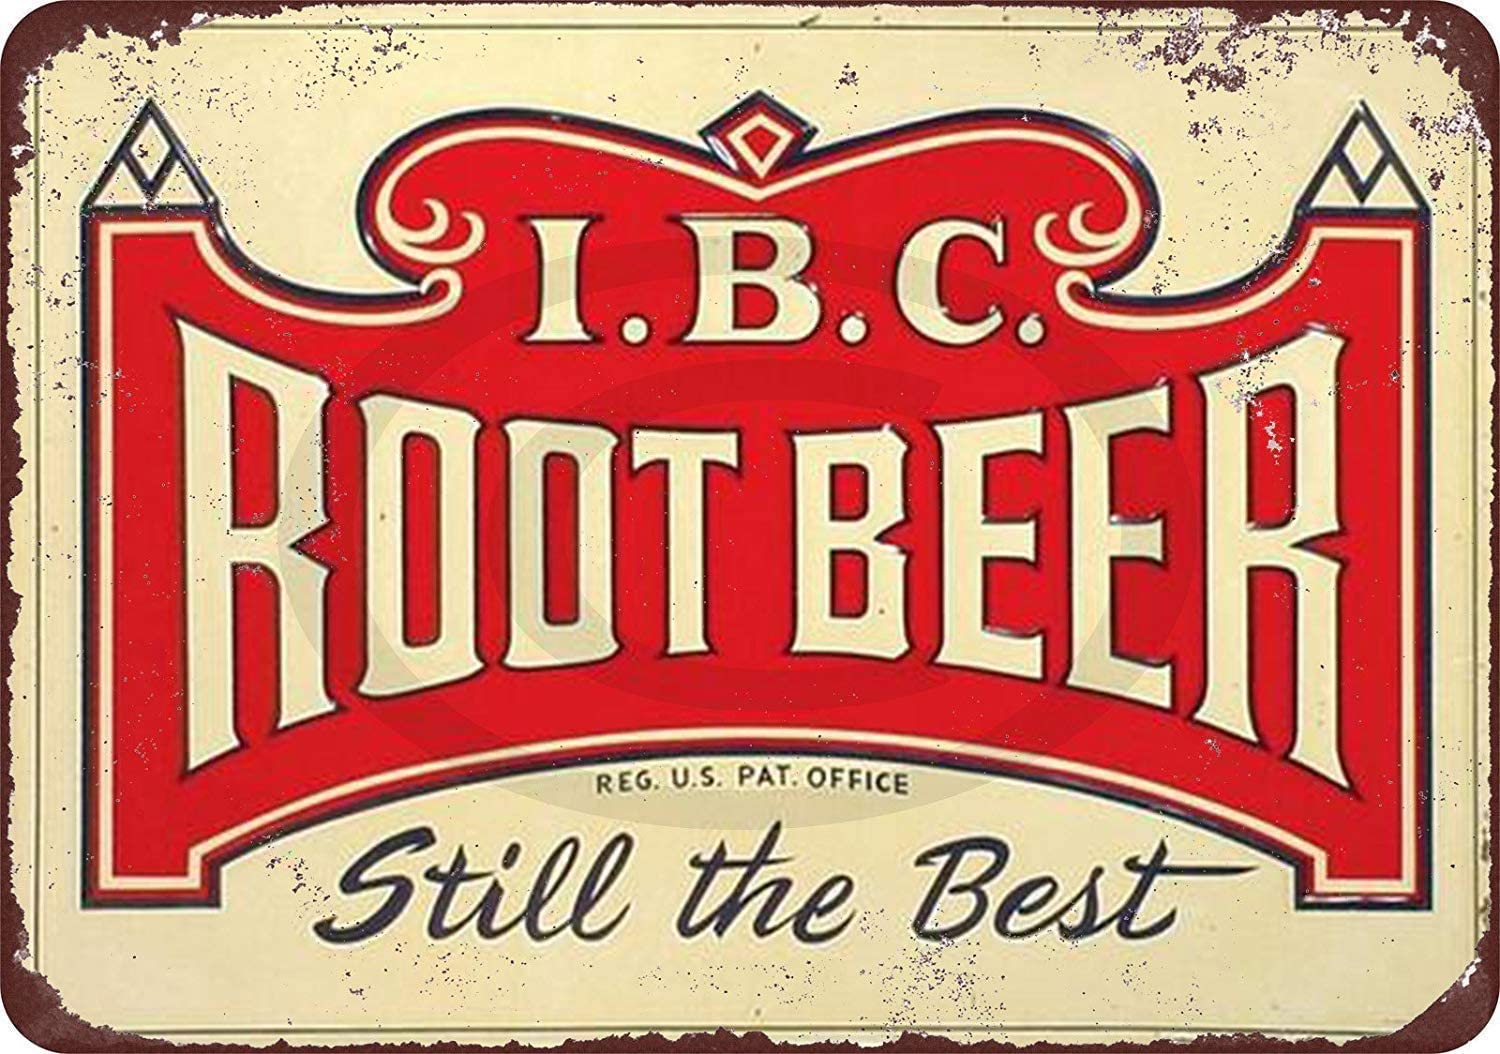 MAIYUAN Metal Tin Signs-New Tin Sign IBC Root Beer Still The Best Vintage Look Aluminum Metal Sign 8x12 Inches (H9-D064)